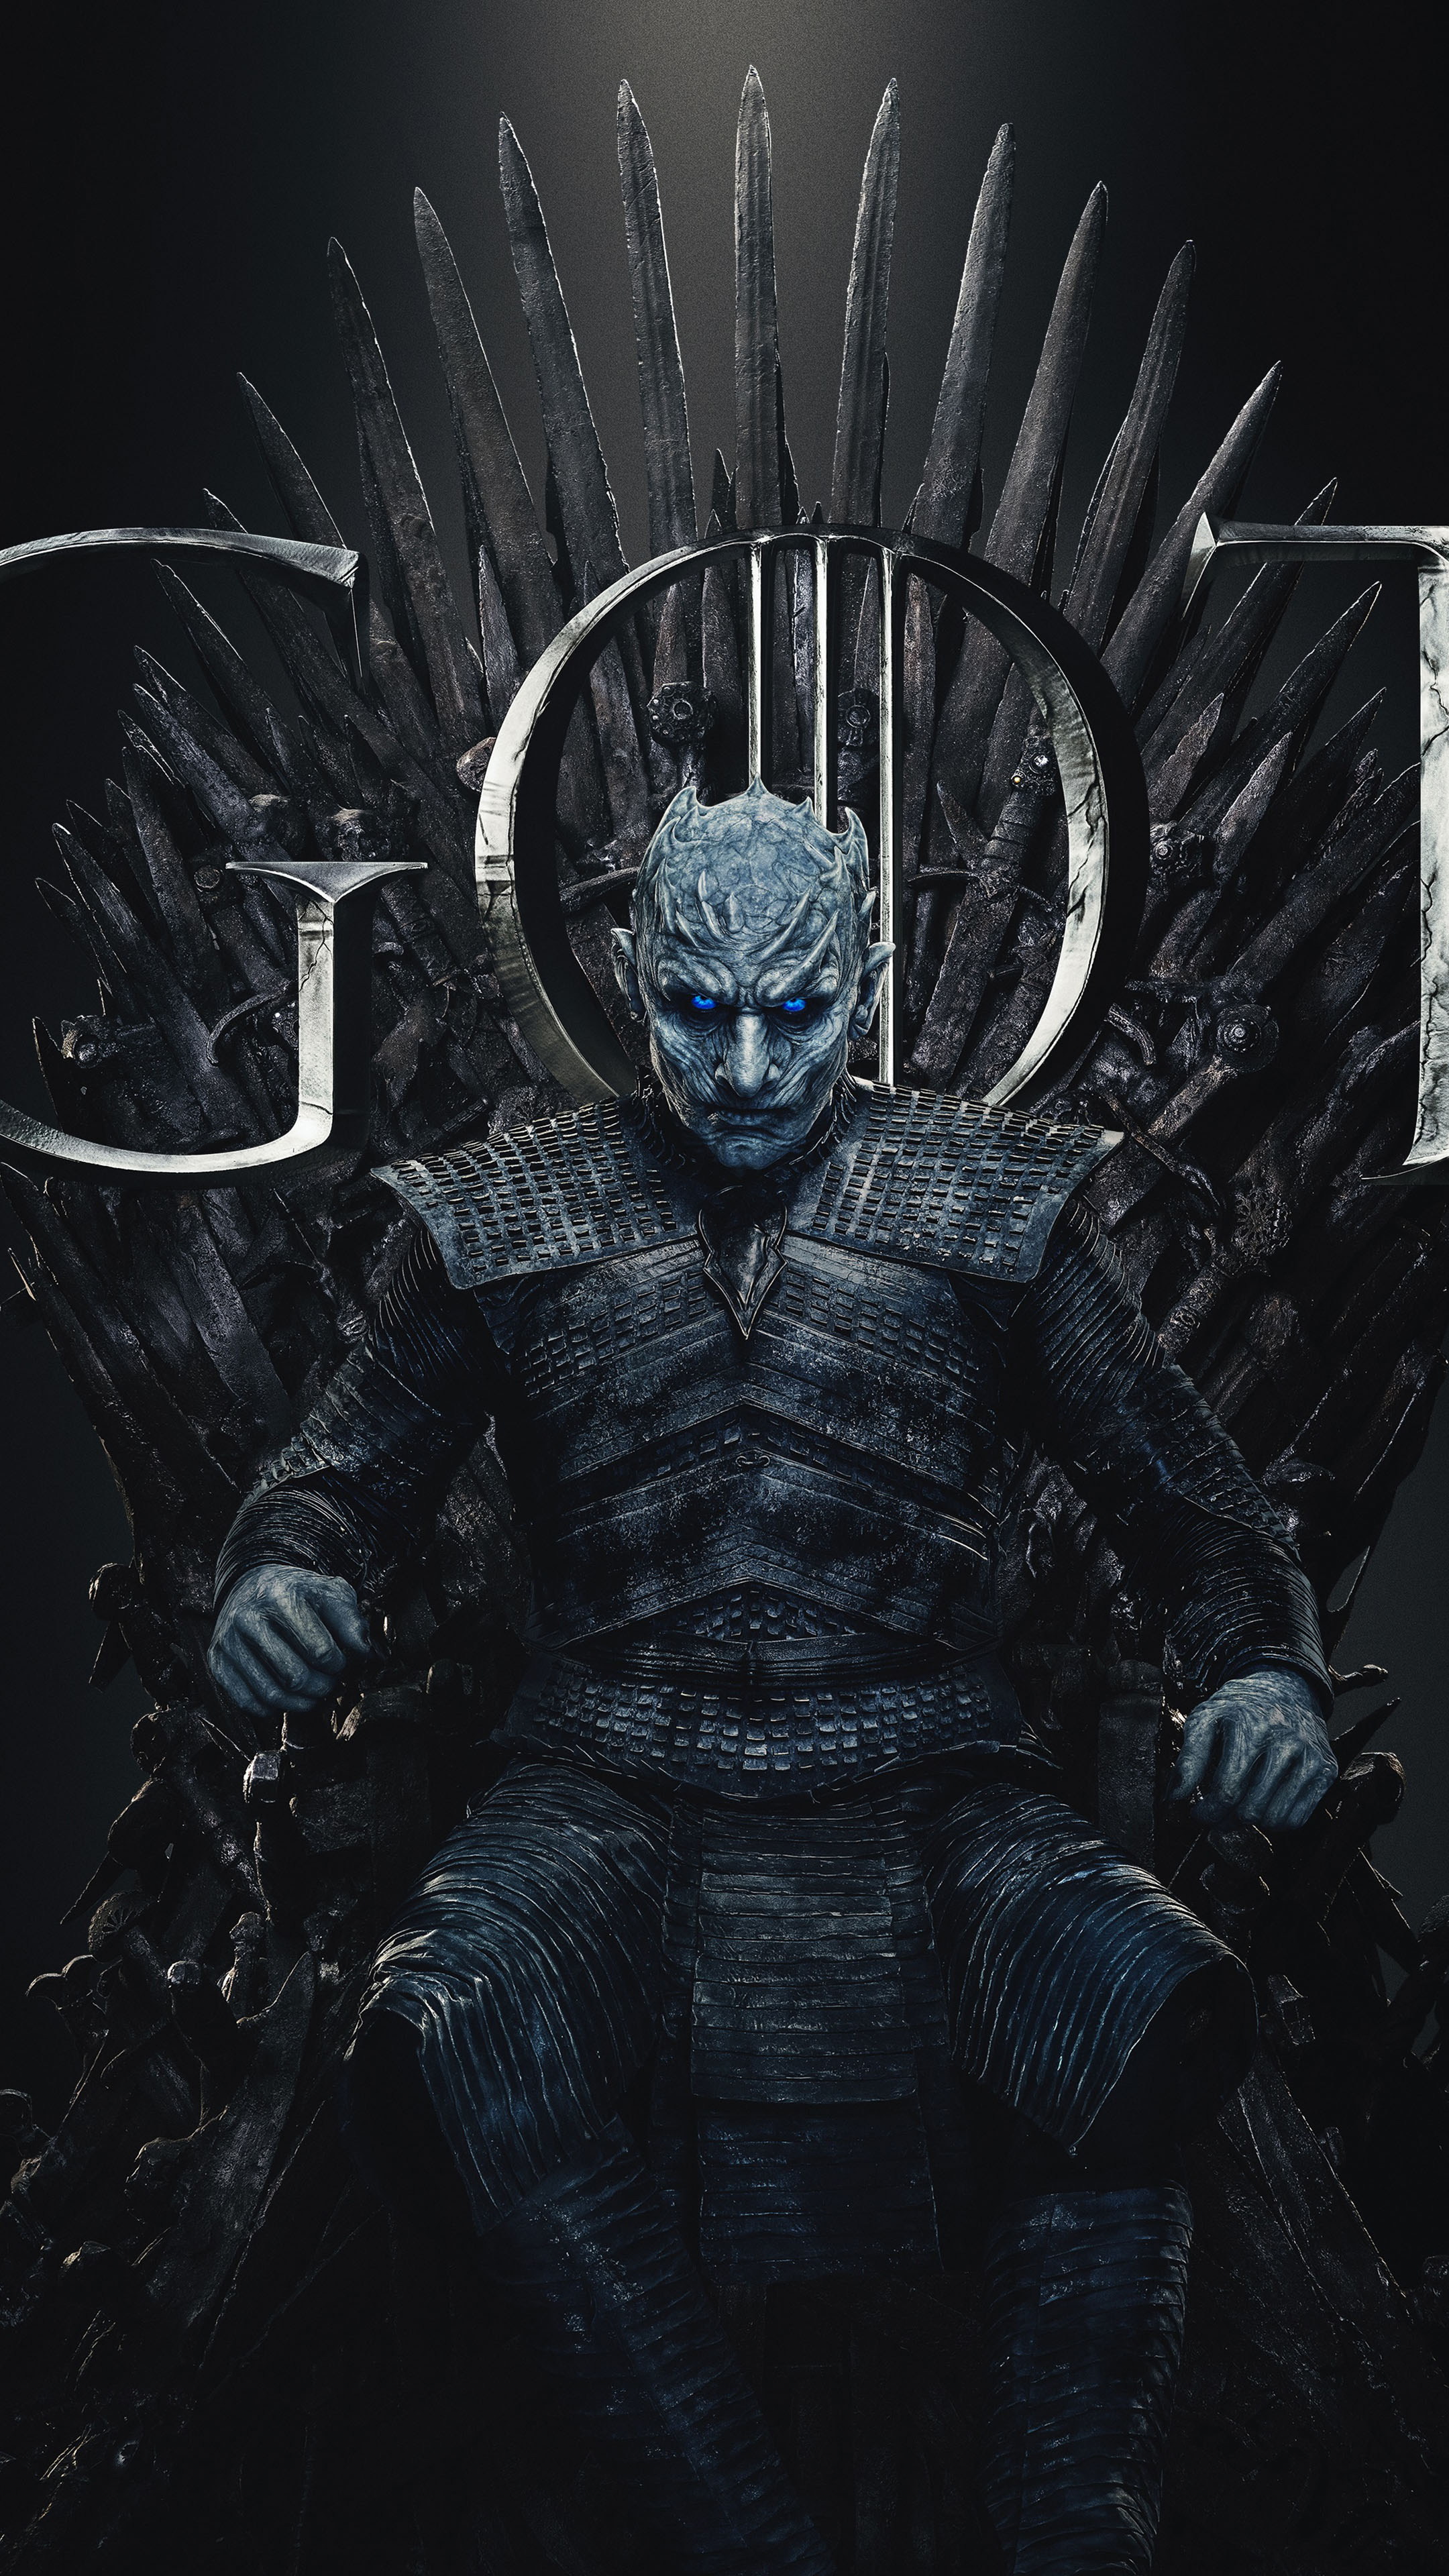 Download Night King Game of Thrones Season 8 Pure 4K Ultra HD 2160x3840